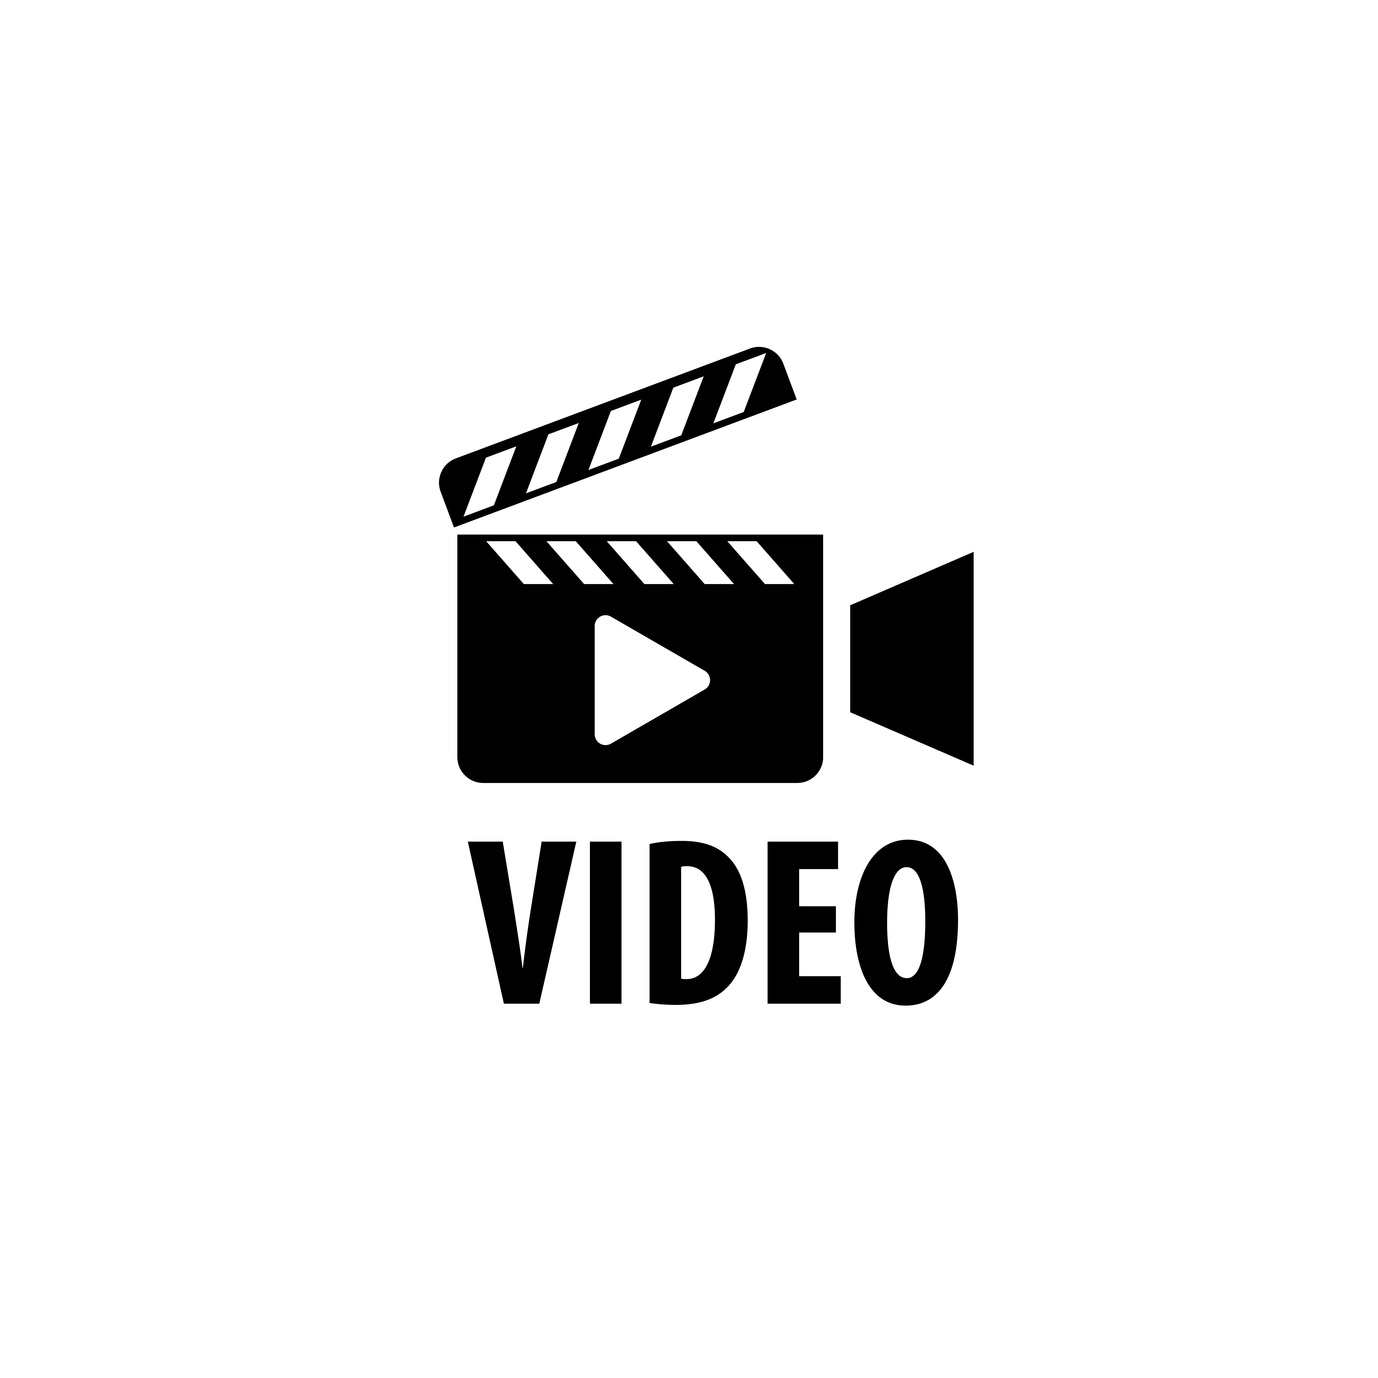 5 Steps to Create a Camera-Ready Video Production Logo